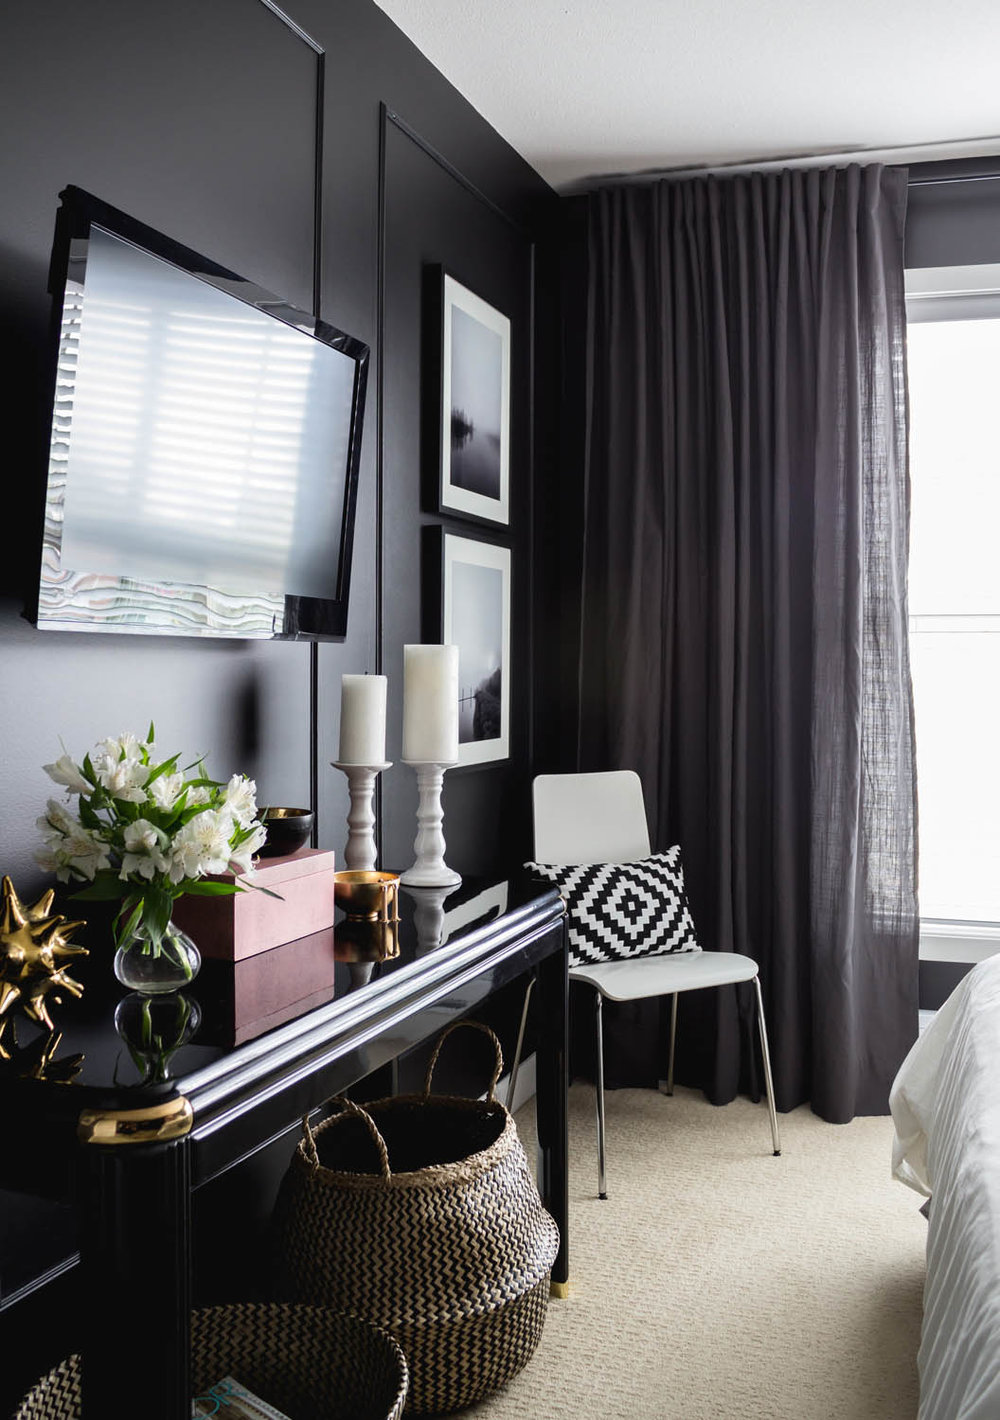 This Bedroom Refresh By Crush Interiors, Originally Posted On Rue.  Obviously I Love Black So This Room Just Called Out To Me.